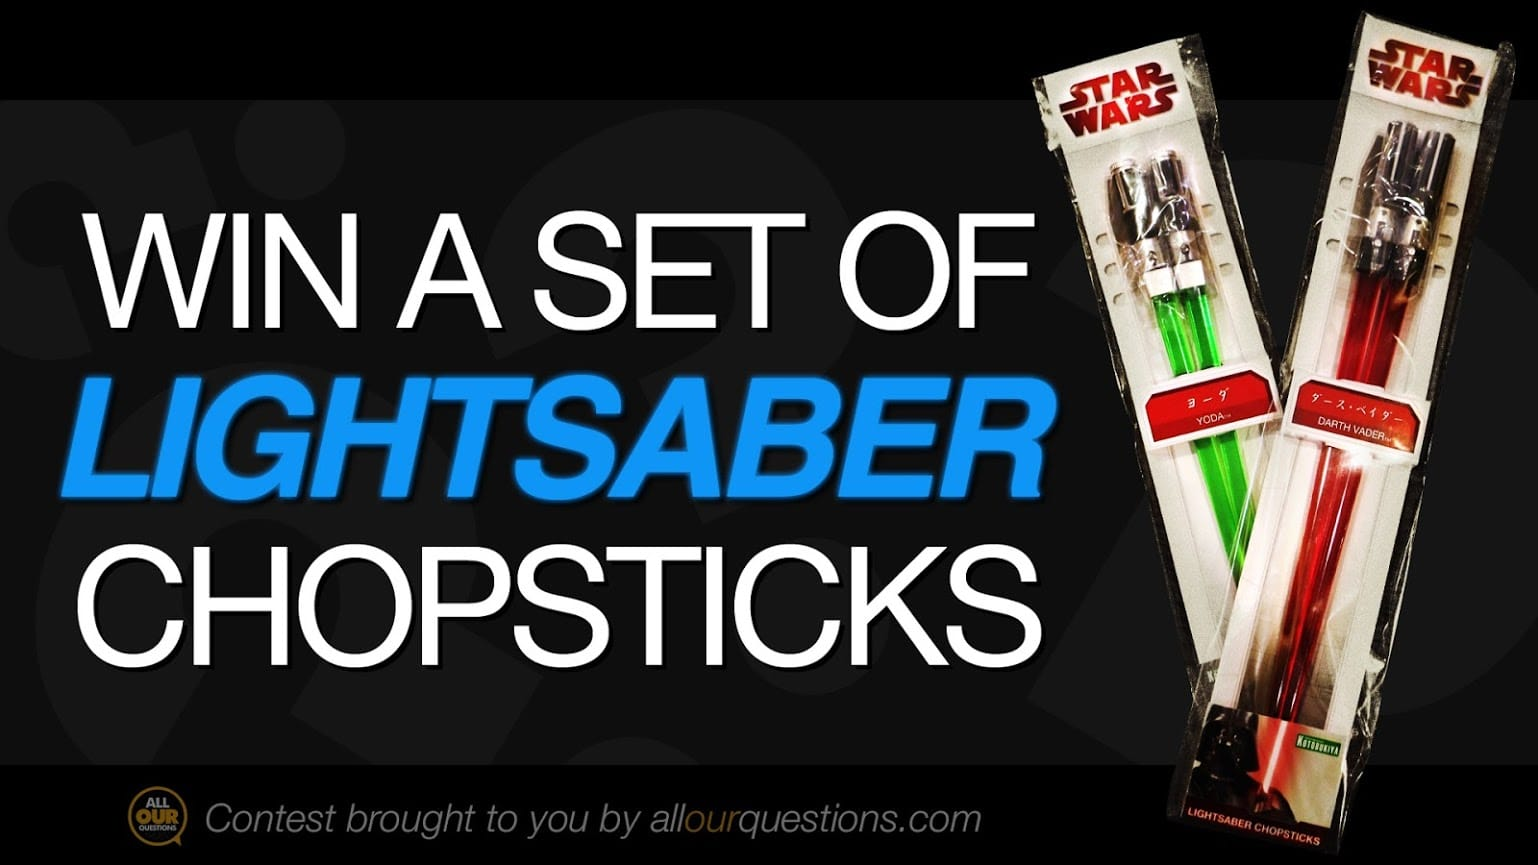 FREE Star Wars Lightsaber Chopsticks So You Can Bring The Force To Your Food